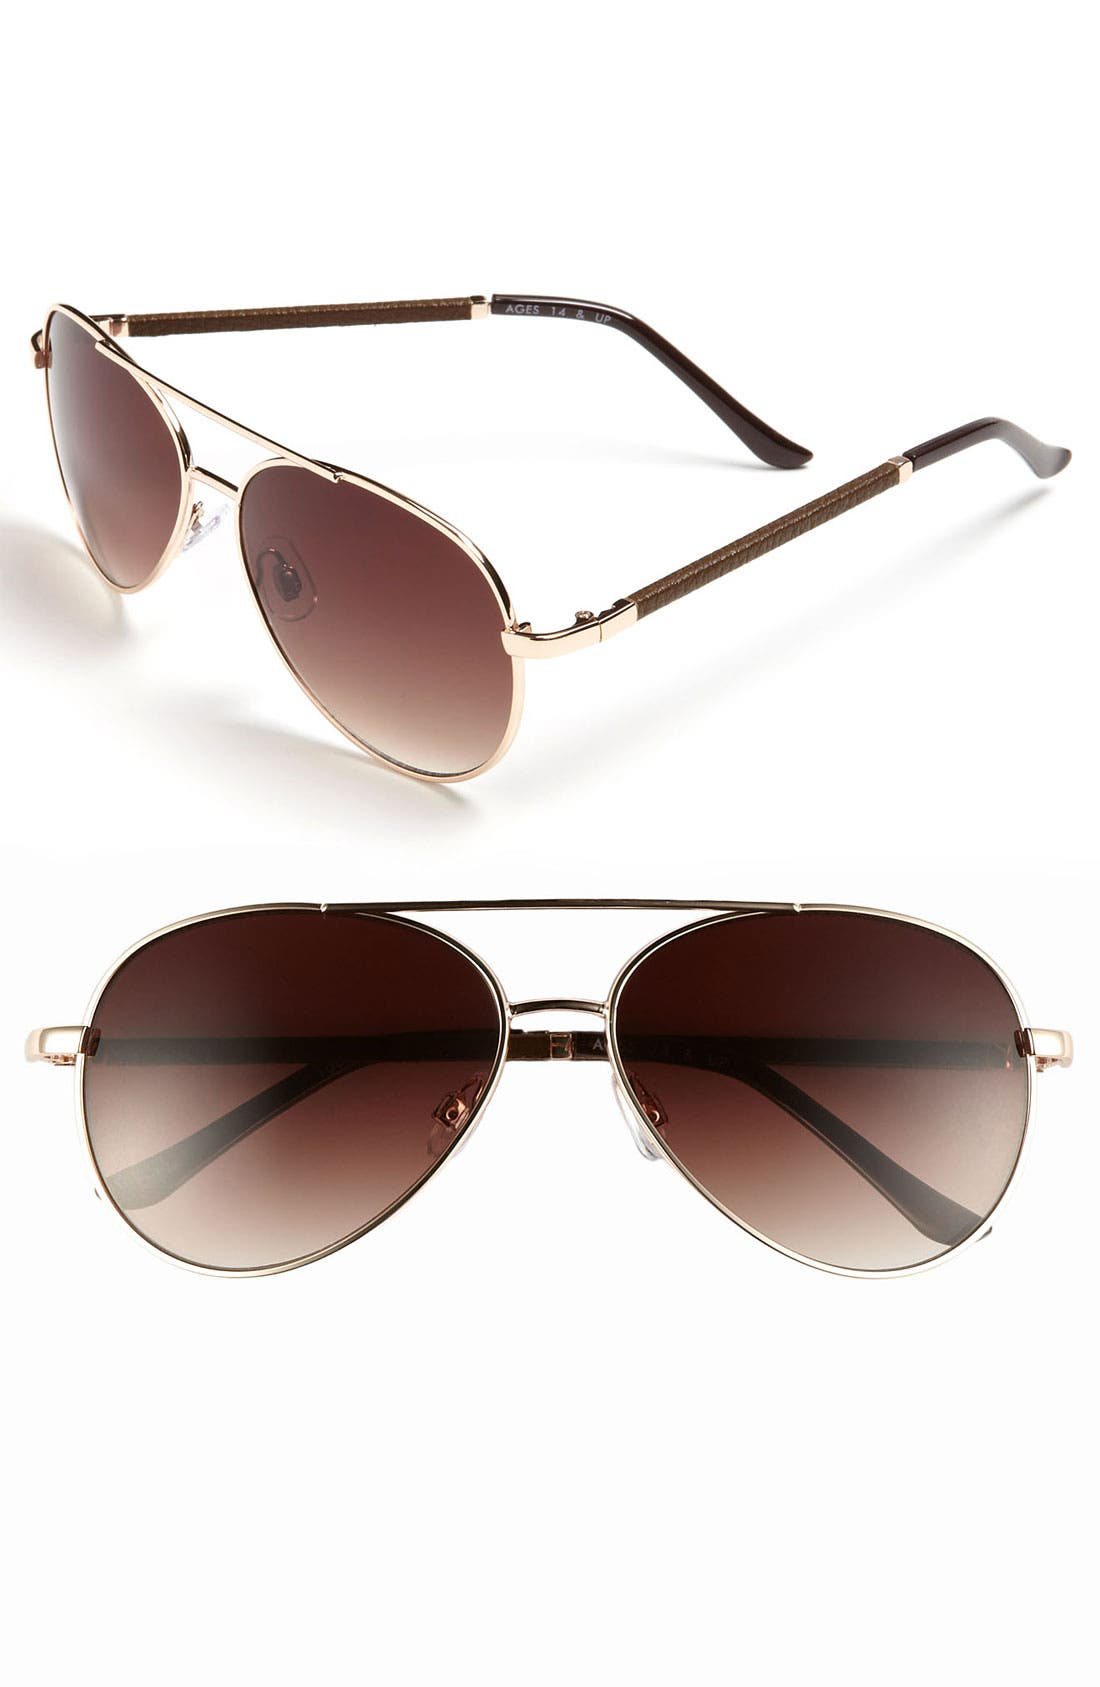 Alternate Image 1 Selected - FE NY 56mm Aviator Sunglasses